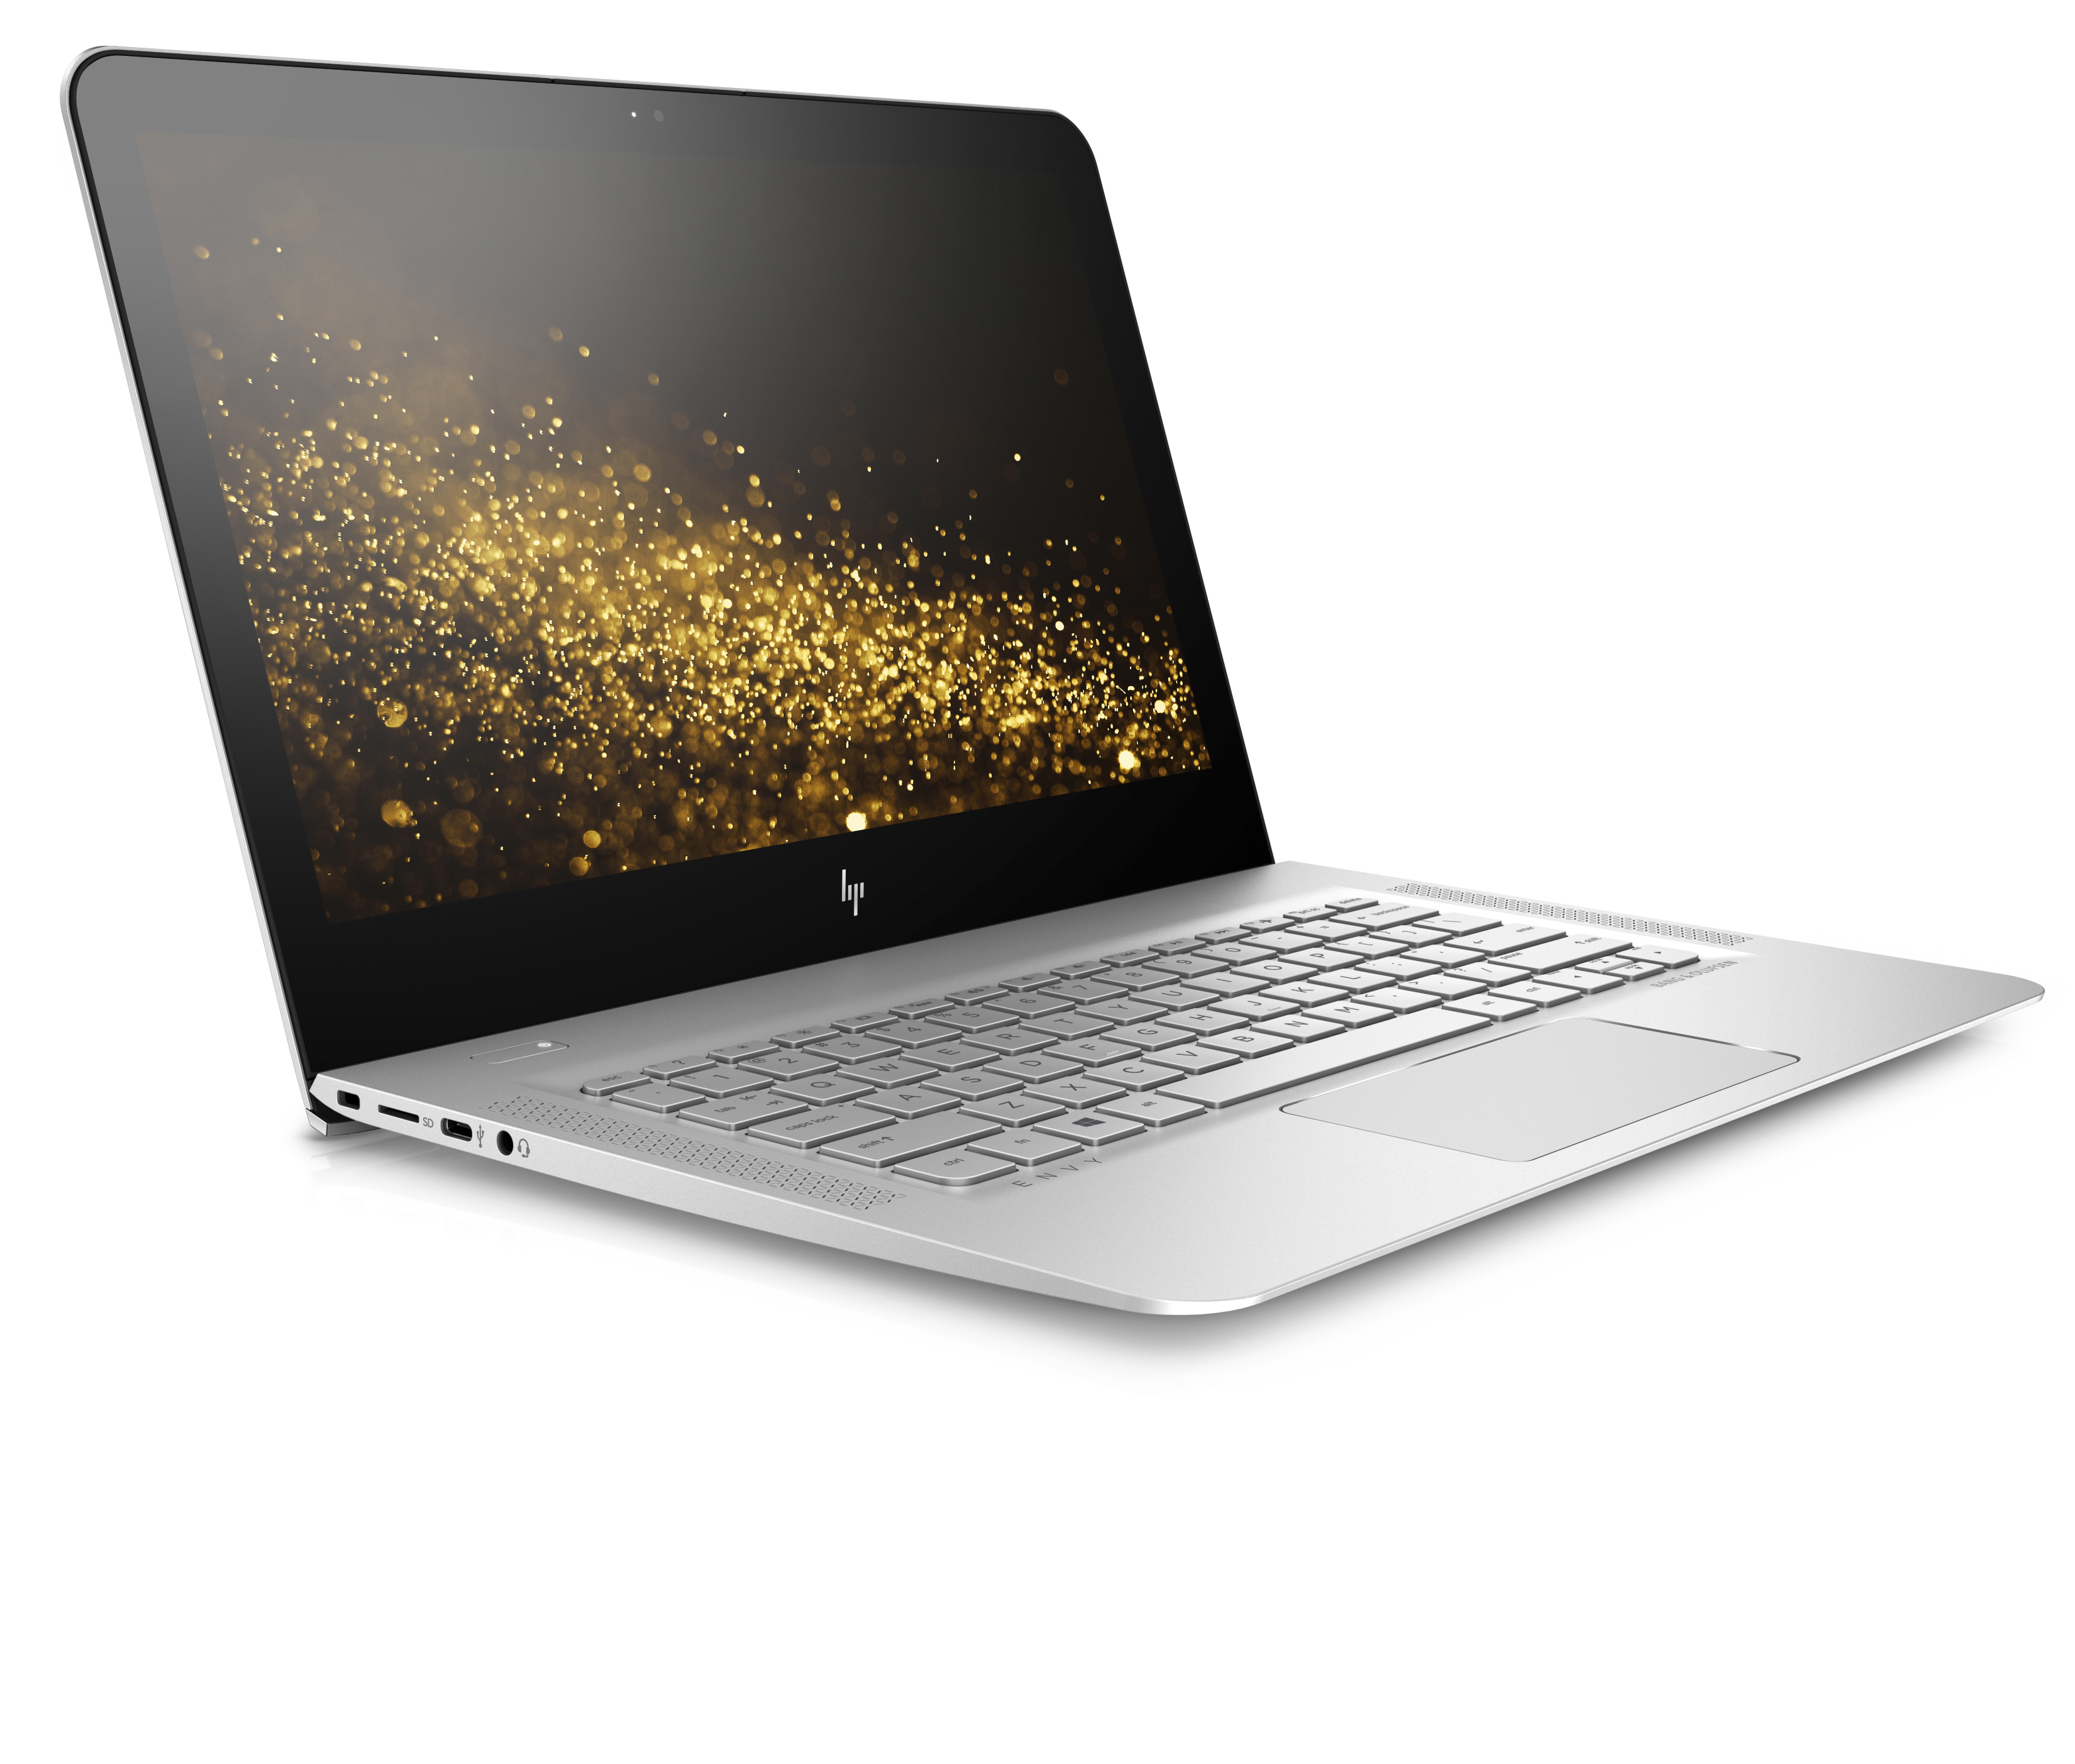 HP Stuns with new Designer HP Spectre x360 and Envy AIO